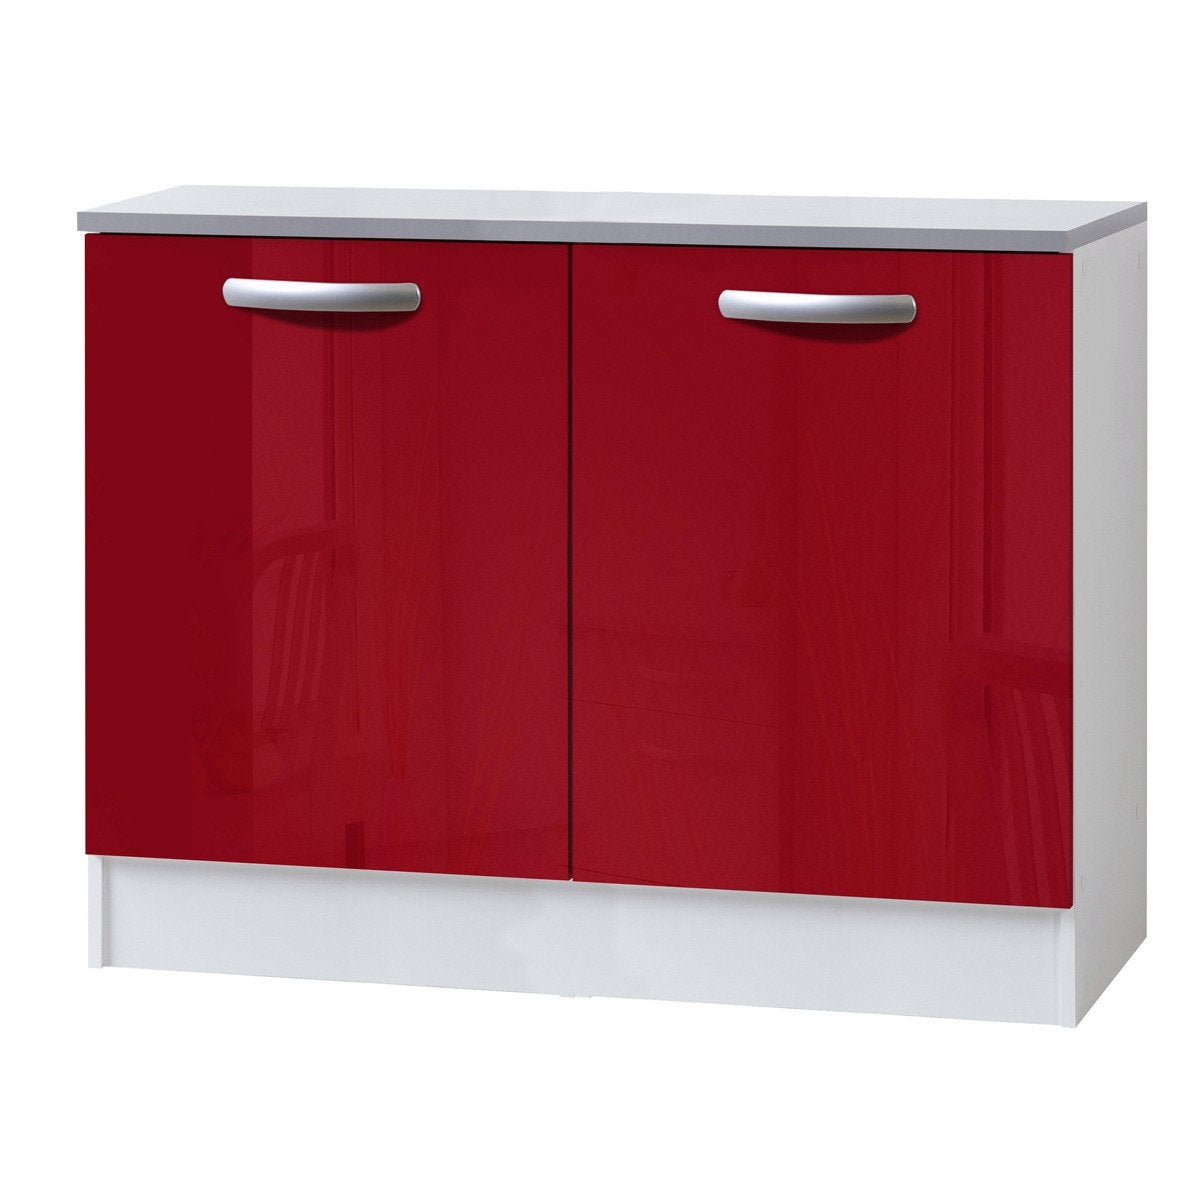 Portes Elements Cuisine Leroy Merlin Of Meuble De Cuisine Bas 2 Portes Rouge Brillant H86x L120x